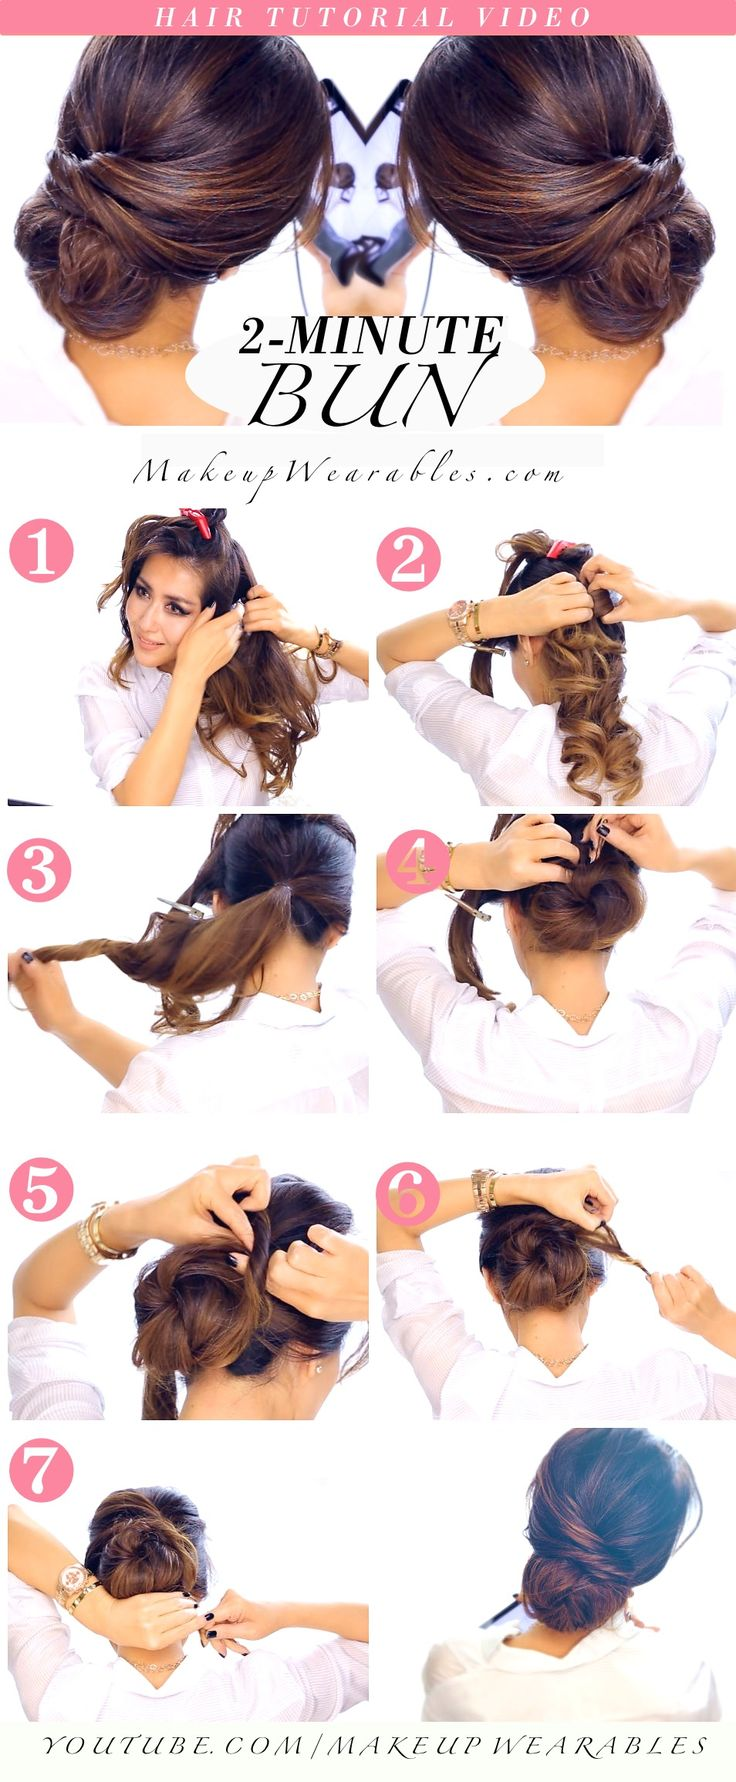 2-Minute Elegant Bun #Hairstyle | Easiest updo you'll ever try! #style #beauty #spring #valentines #hairstyle #love #cute